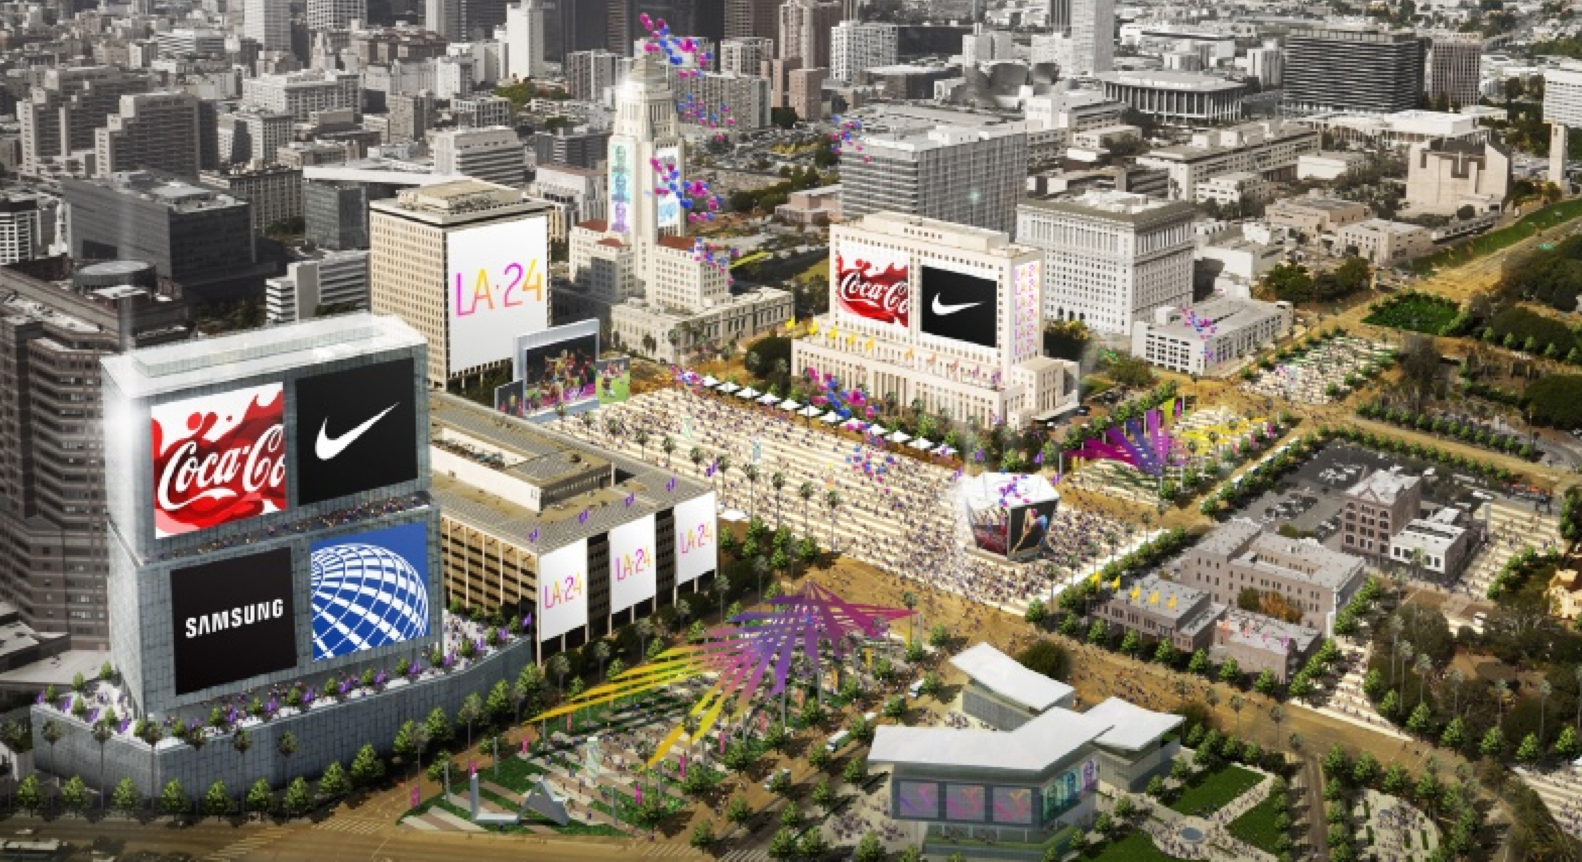 An artist's rendering shows downtown Los Angeles during the 2024 Summer Olympics. (LA24)